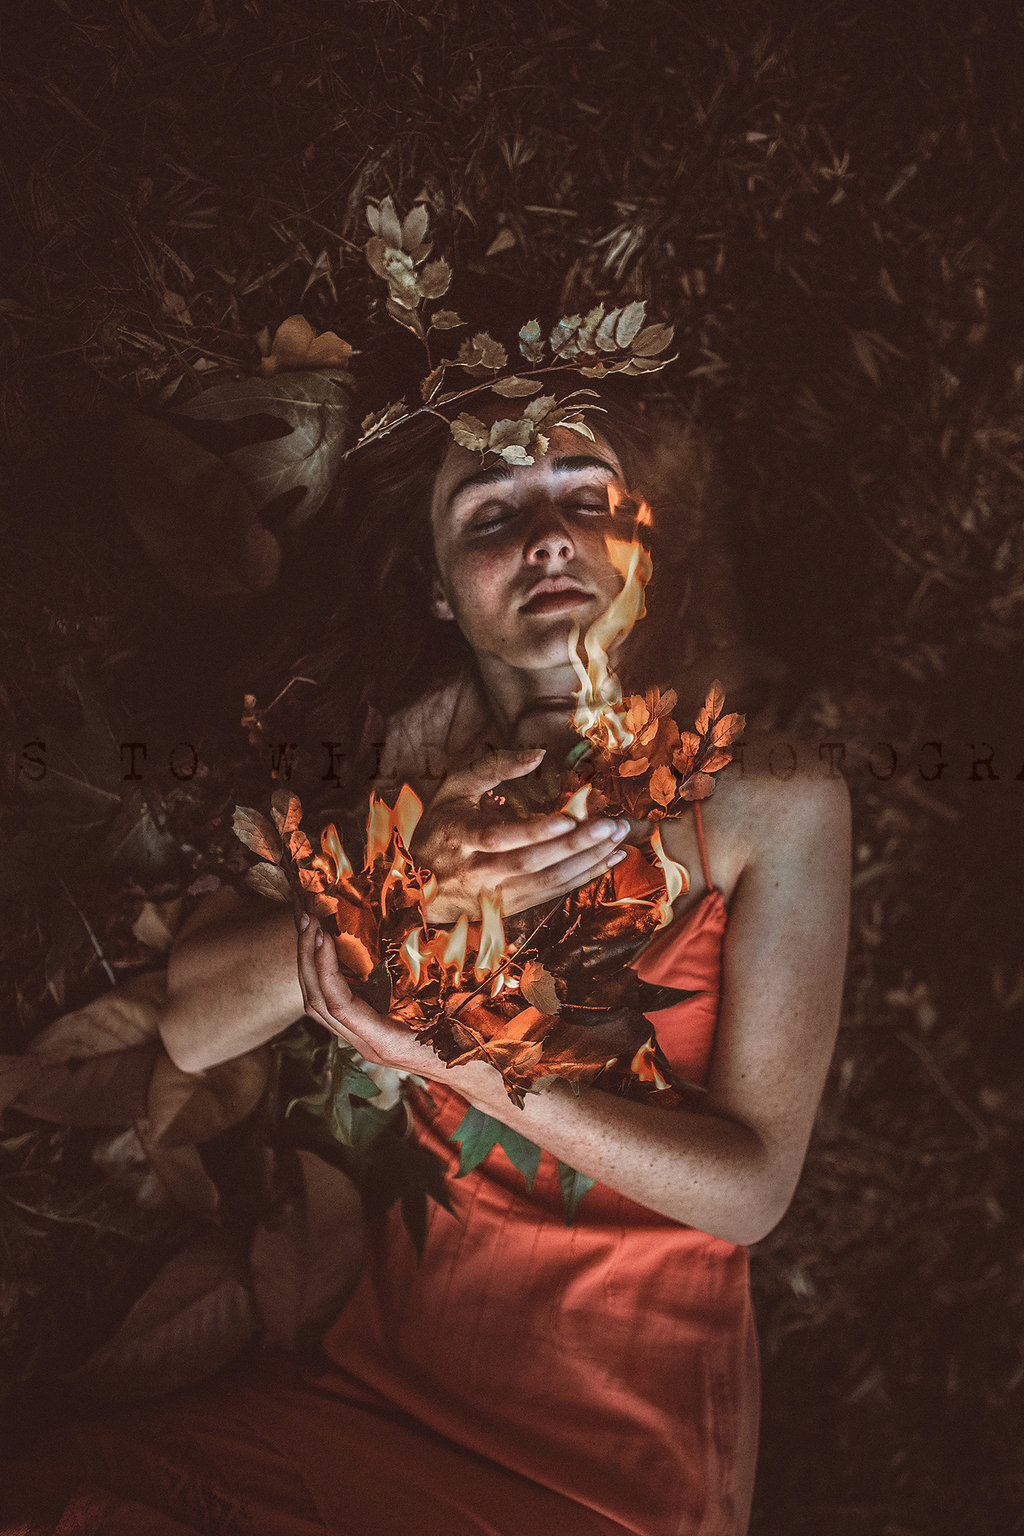 Roots_to_Willows_Photography_burn.jpg